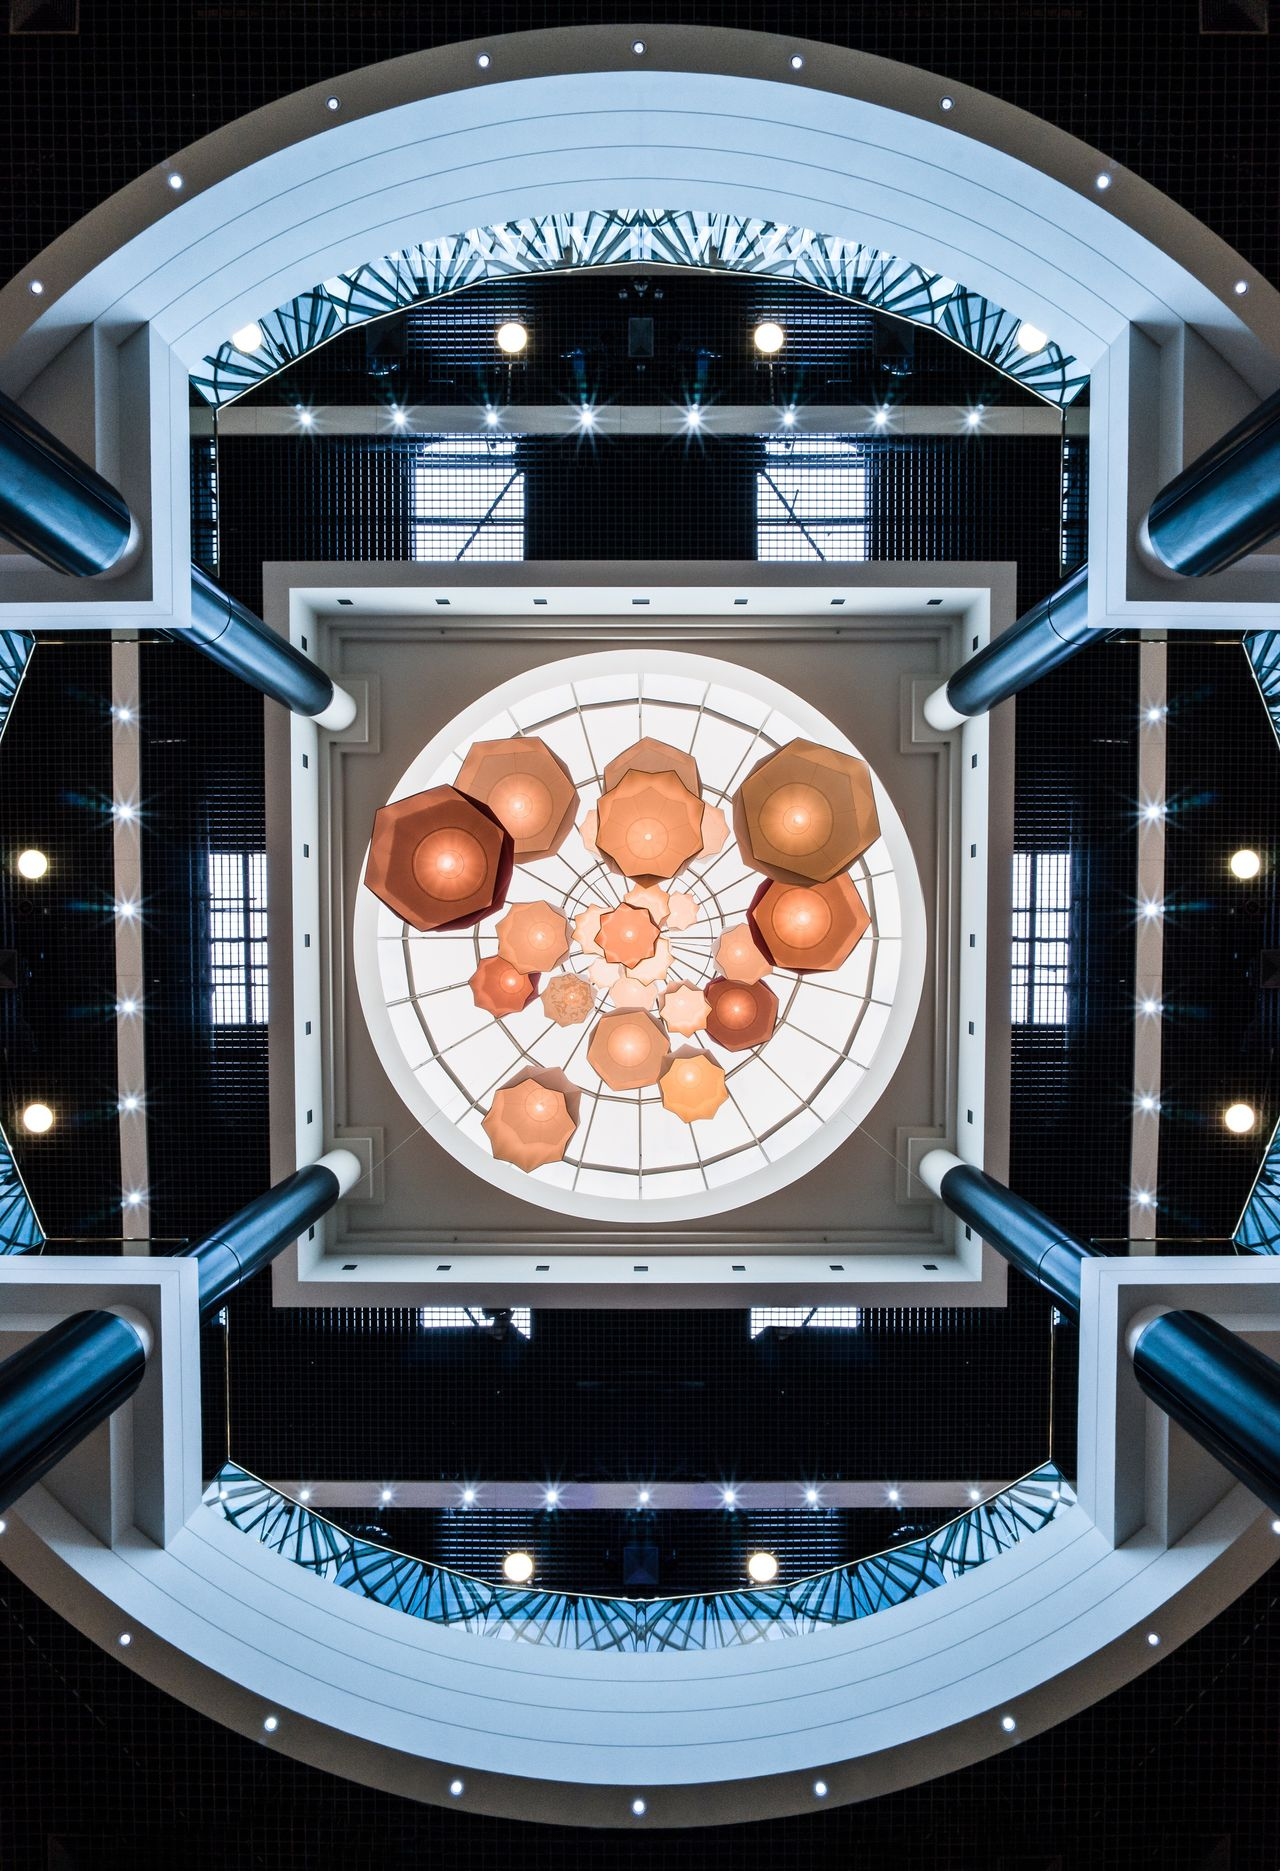 EyeEmBestPics EyeEm Best Shots The Week on EyeEm EyeEm Best Edits Architecture indoors Ceiling Ceiling Lights mall Montpellier polygone lookup